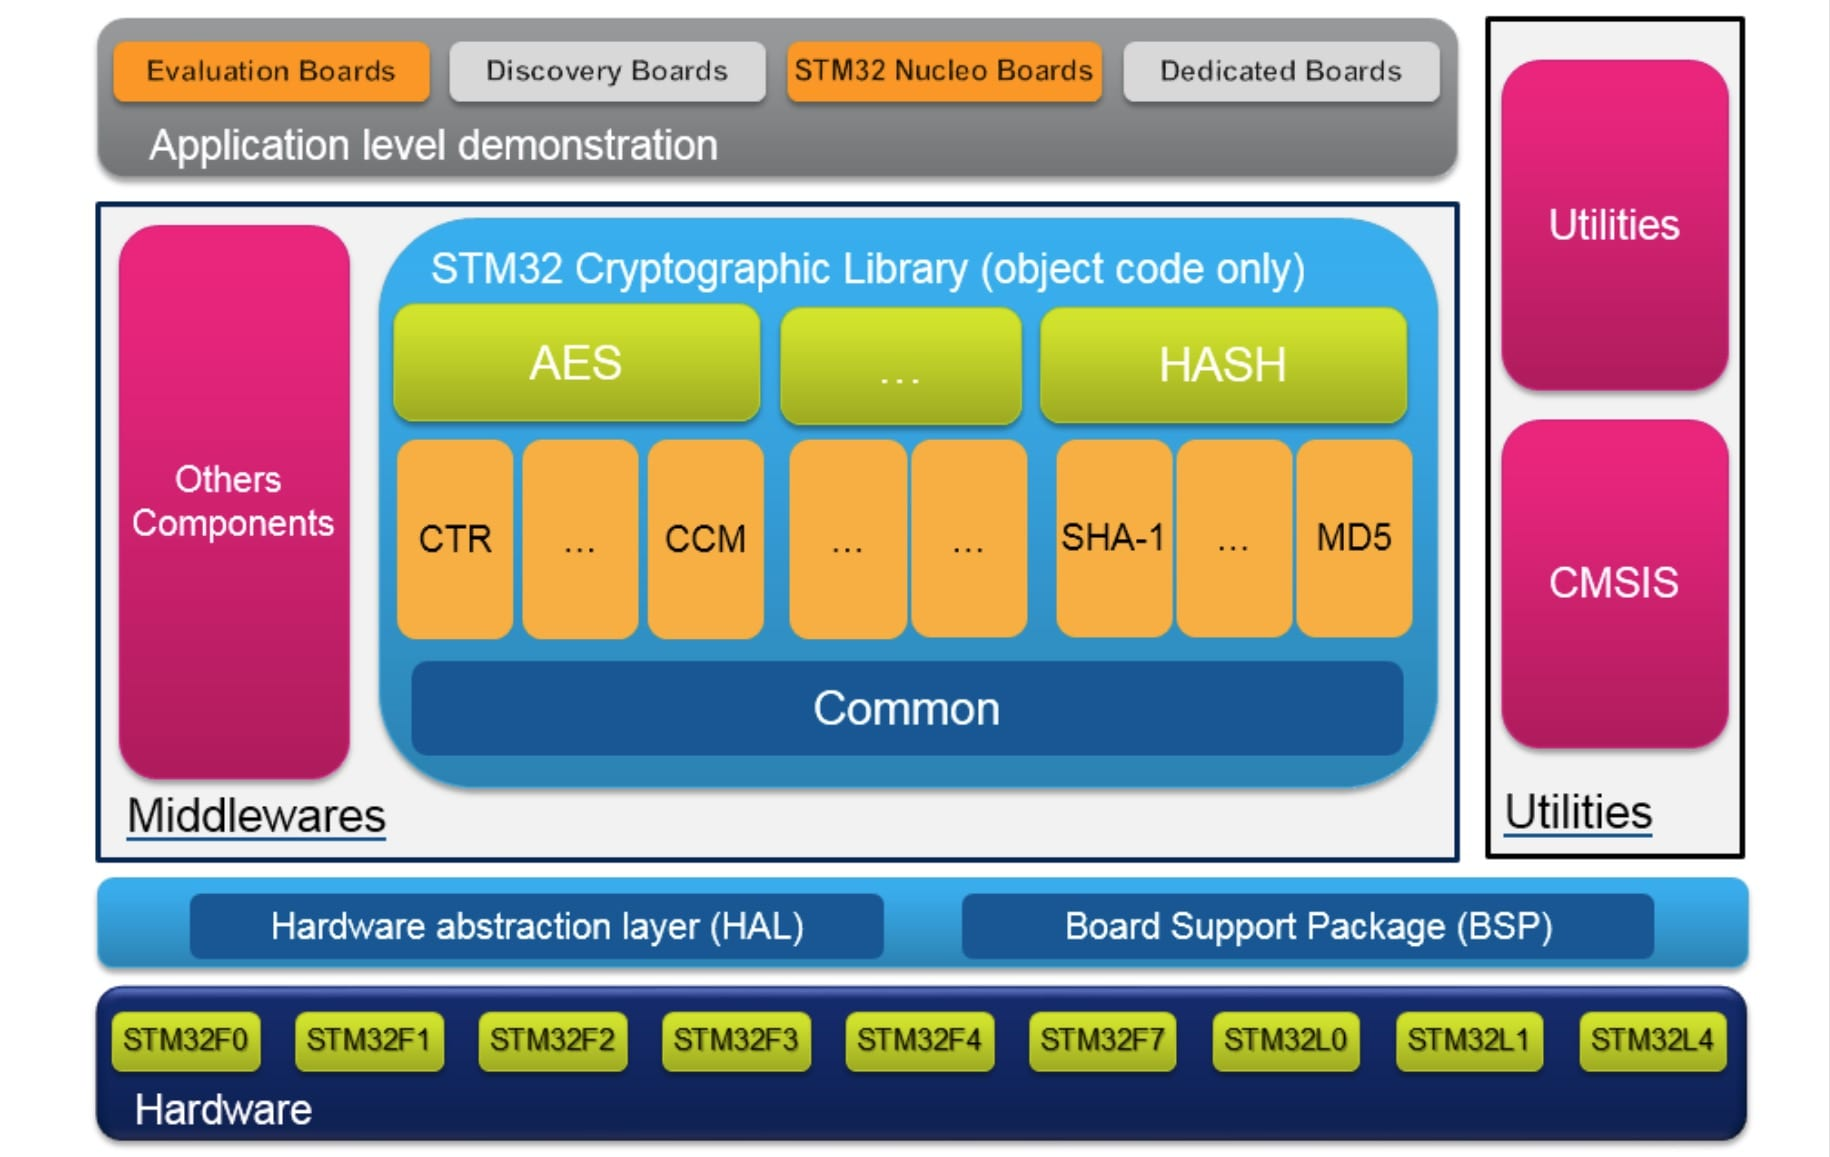 Cryptolib: The Most Complex Cryptographic Algorithms Become